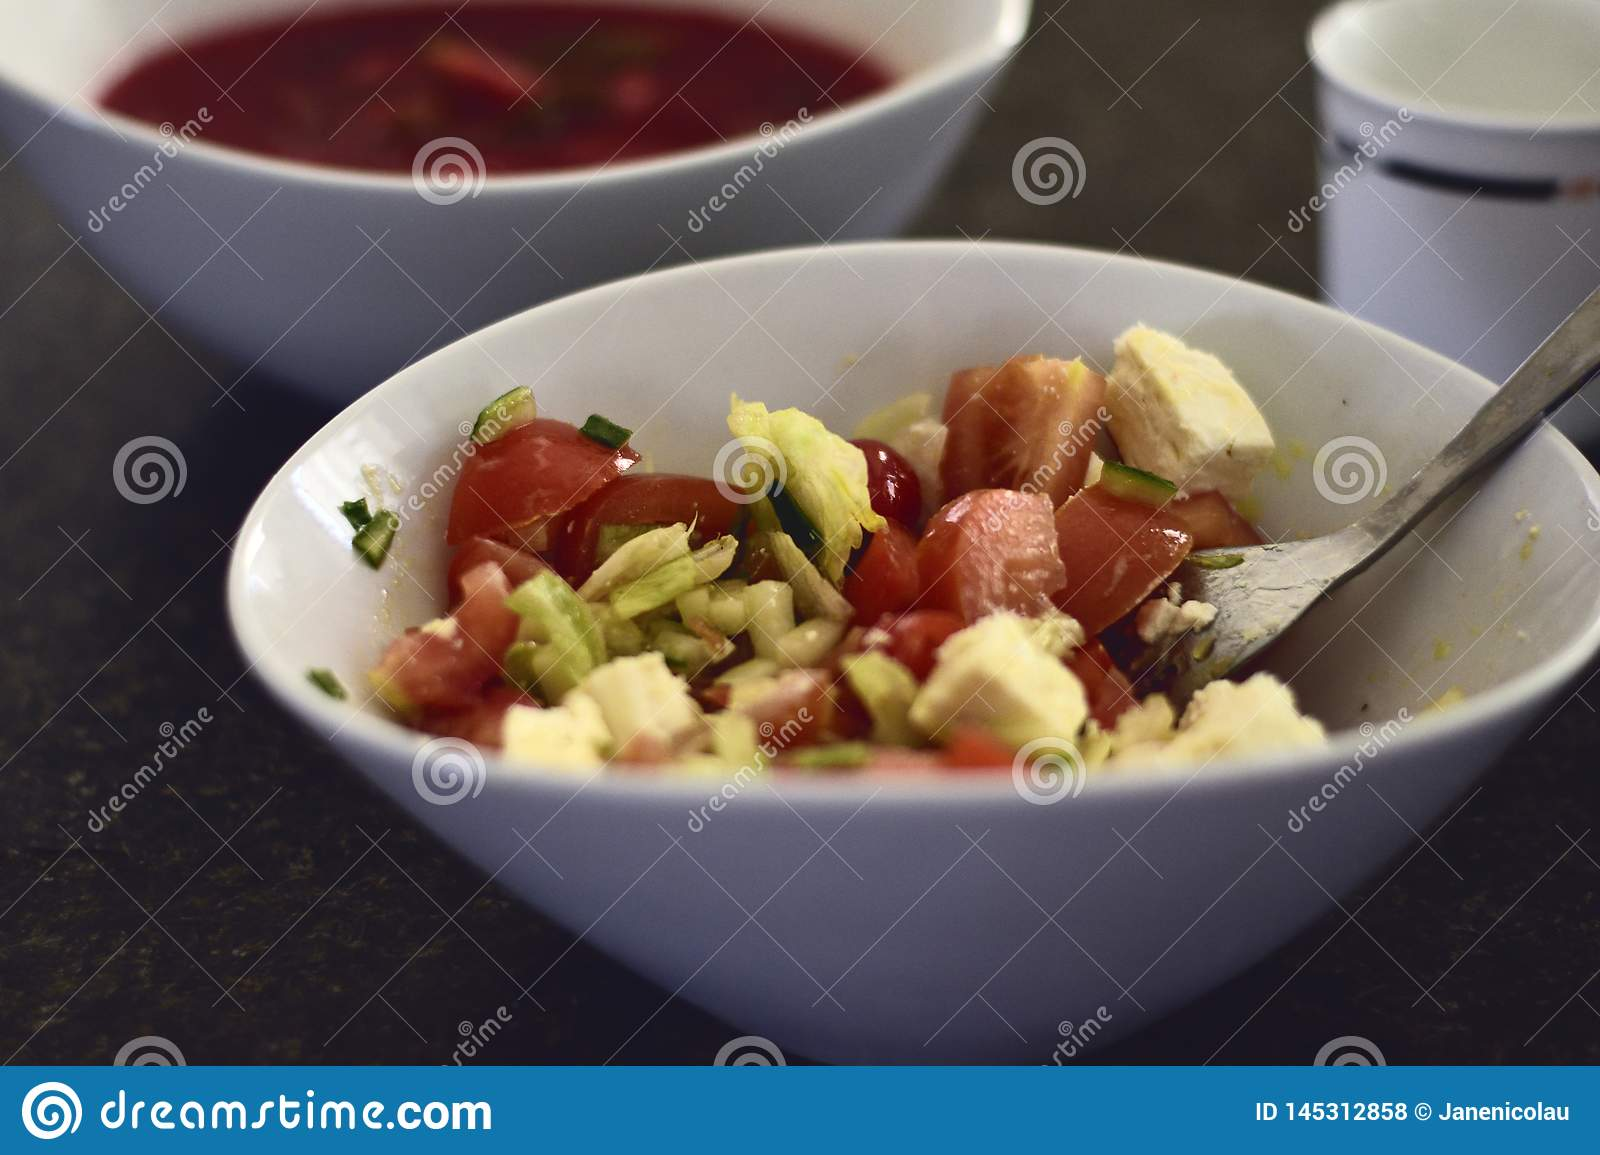 Greek salad with red beets soup background